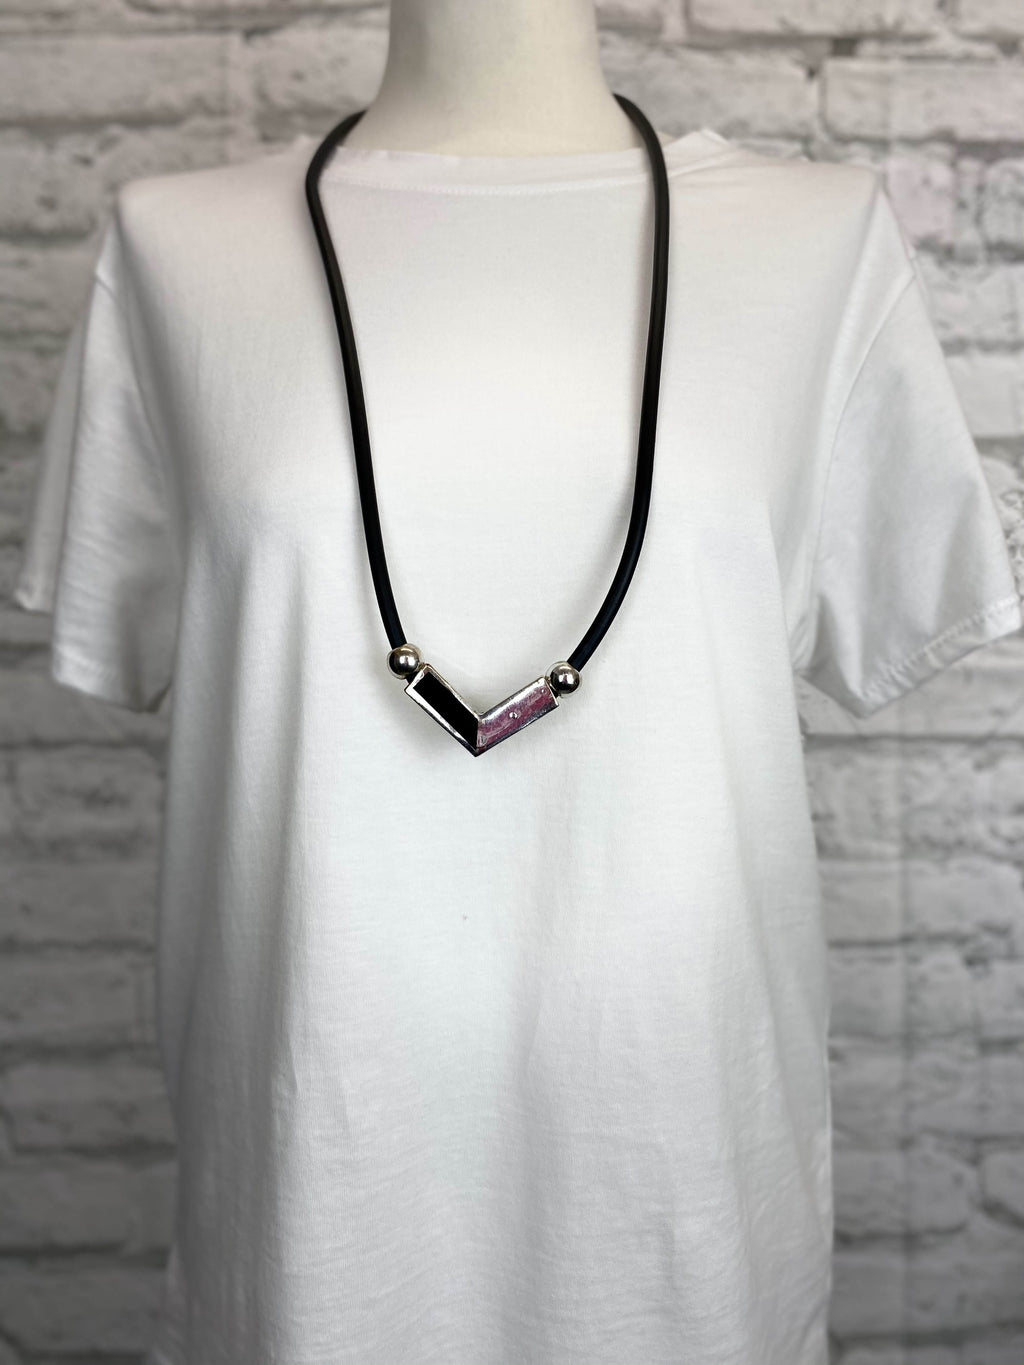 Black Rubber Necklace - Arrow Down